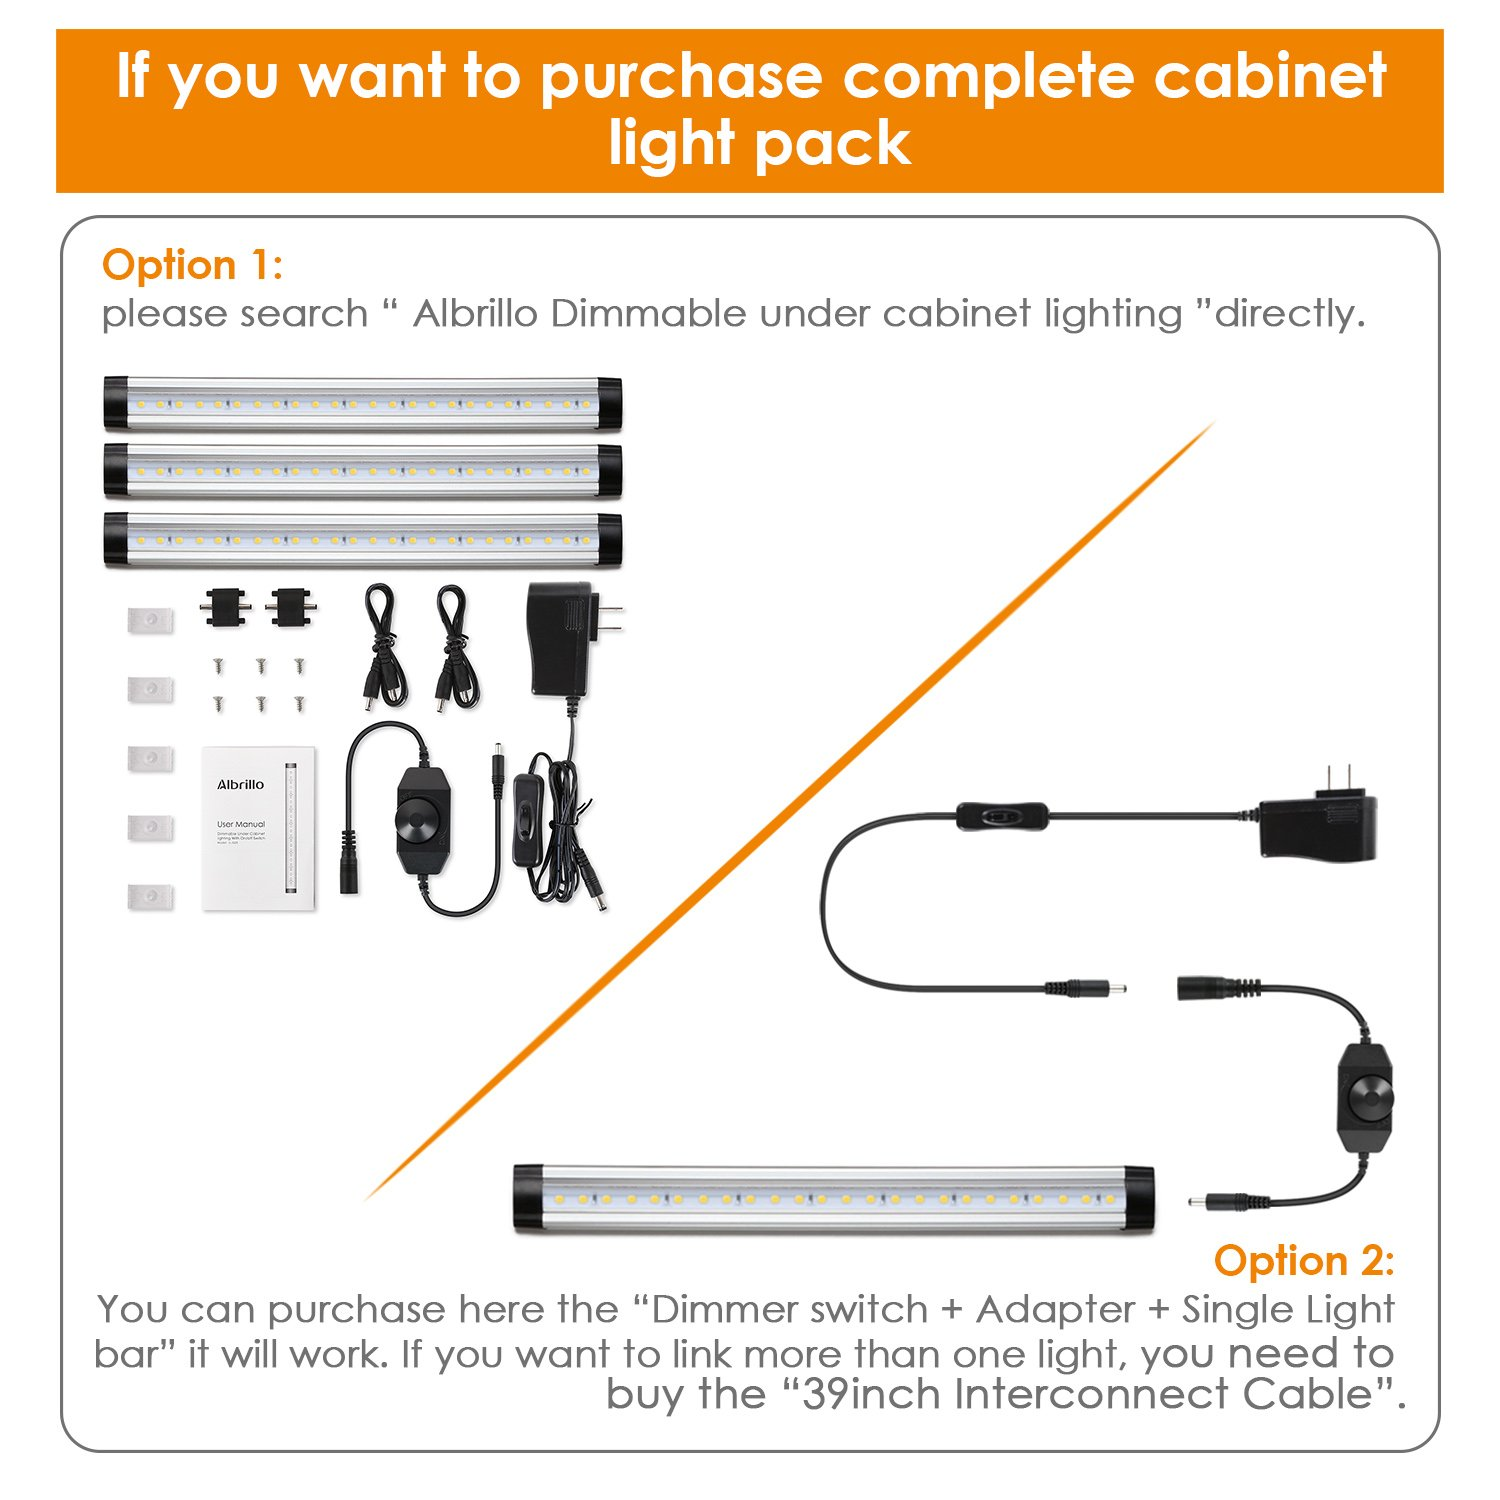 Albrillo 39 Inch Extension Cable Male To Female For Led Under Highbeam Switch Wiring Light Bar Cabinet Lighting Accessories Link Dimmer And Power Adapter